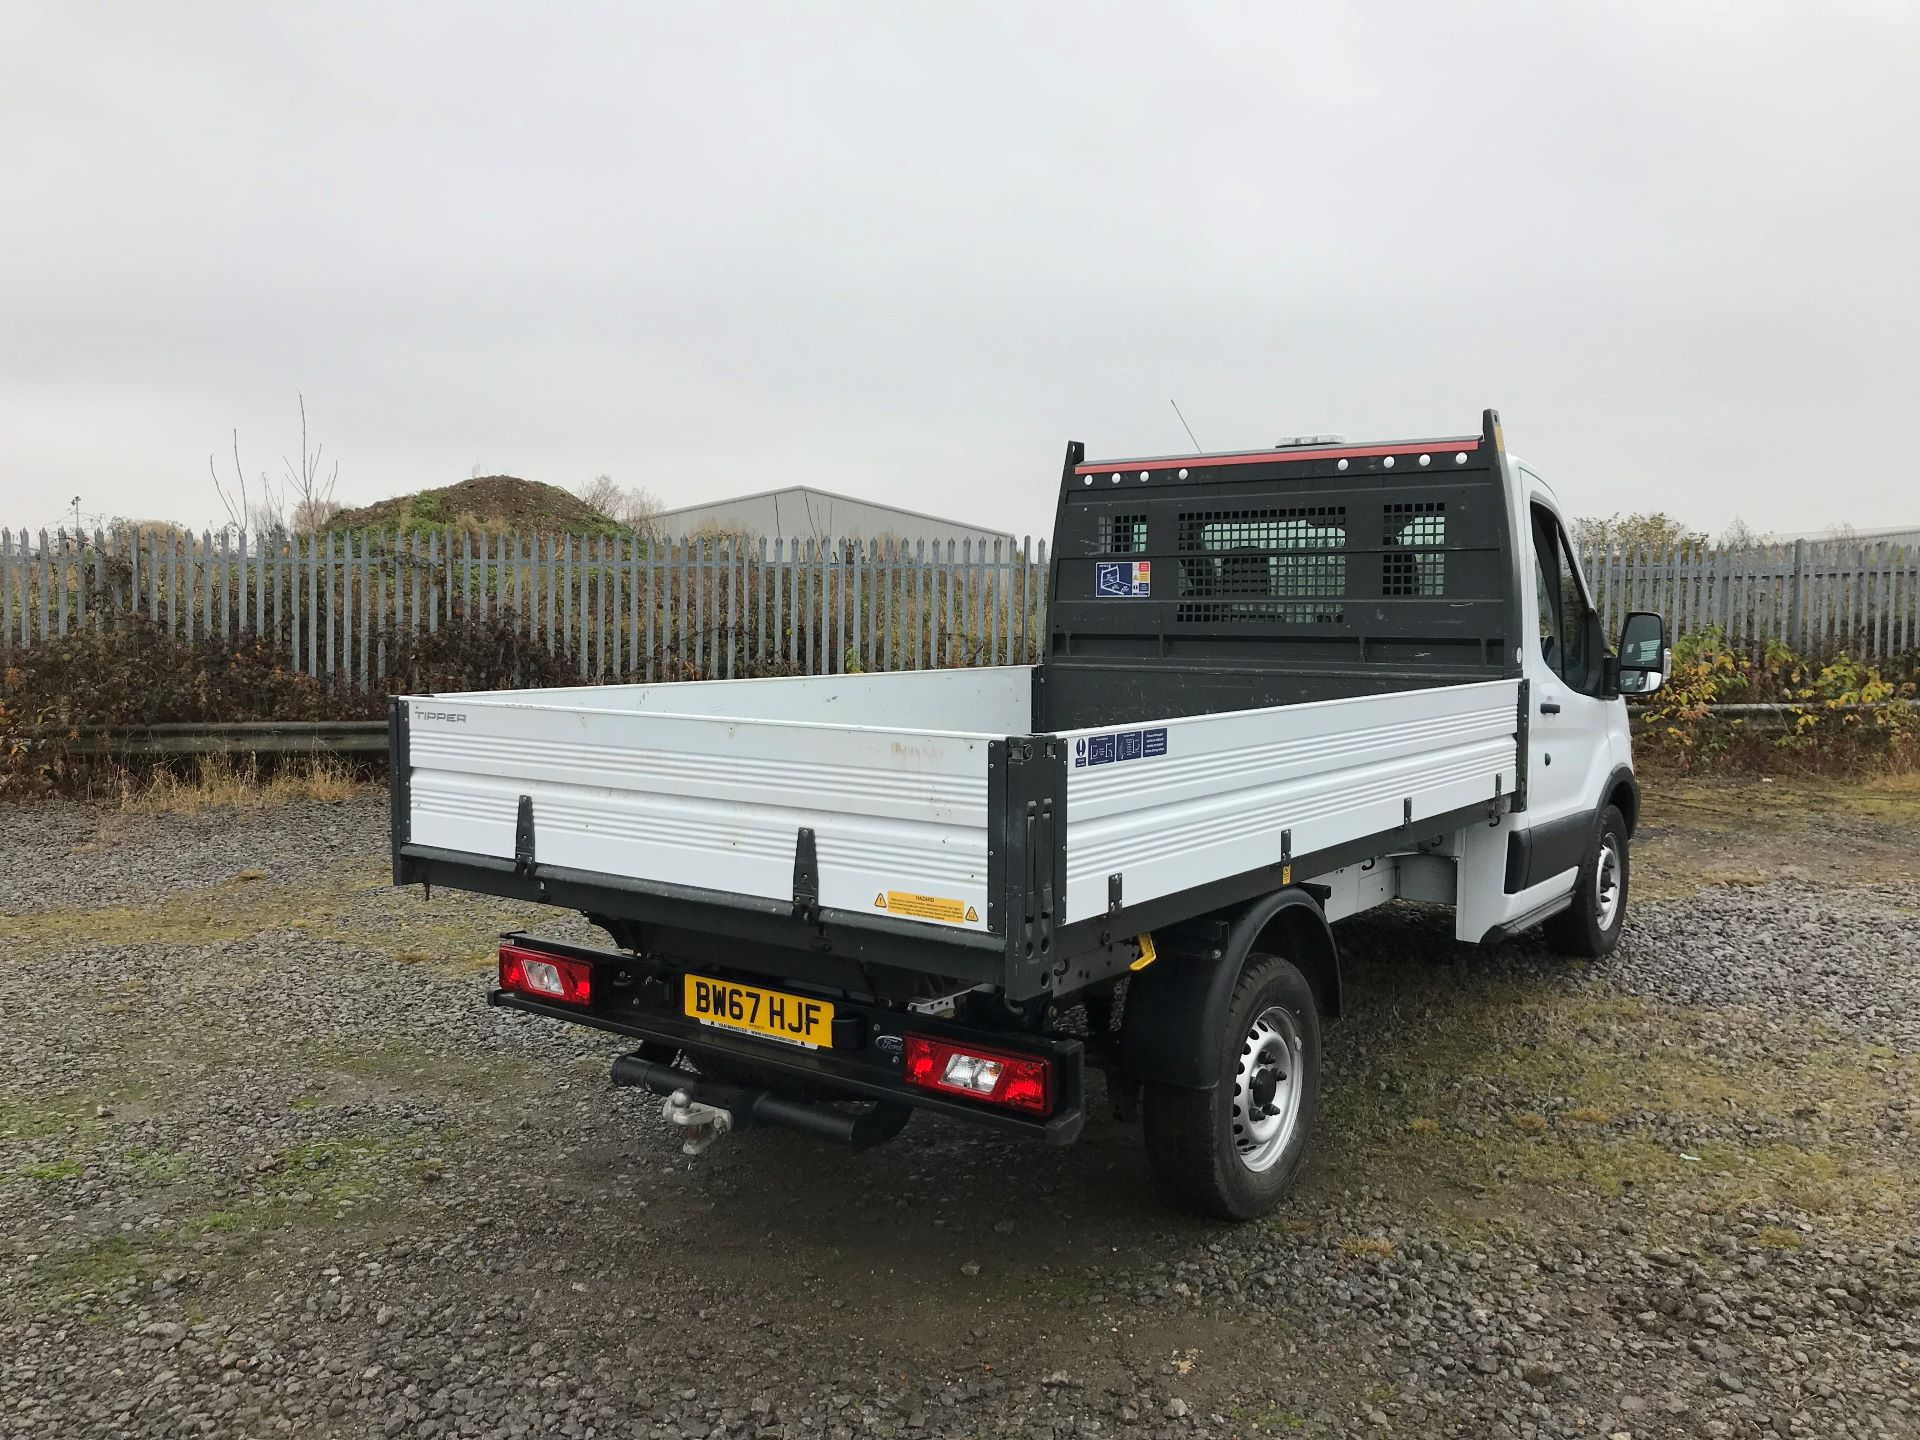 2018 Ford Transit 2.0 Tdci 130Ps One Stop Tipper (BW67HJF) Image 7